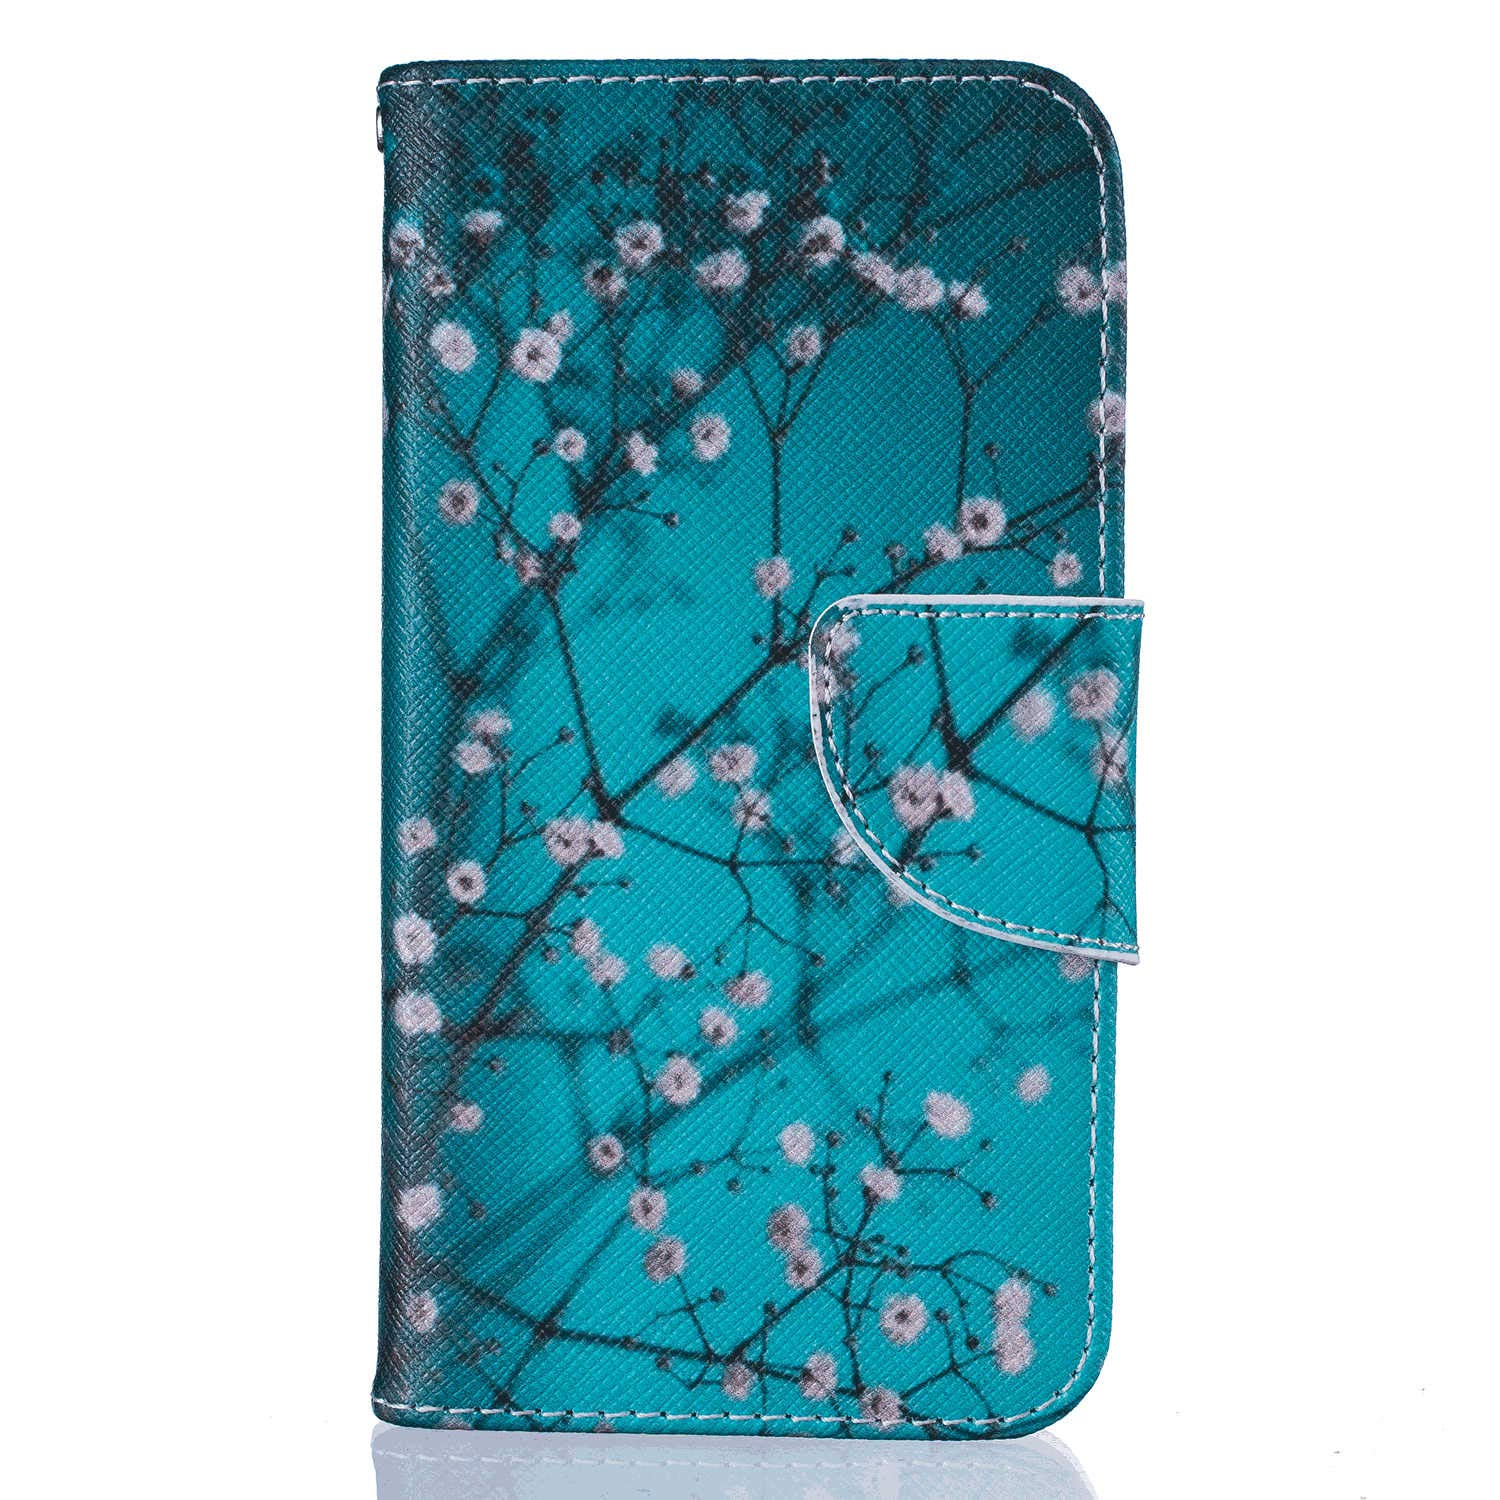 Stylish Cover Compatible with iPhone X Deer Leather Flip Case Wallet for iPhone X